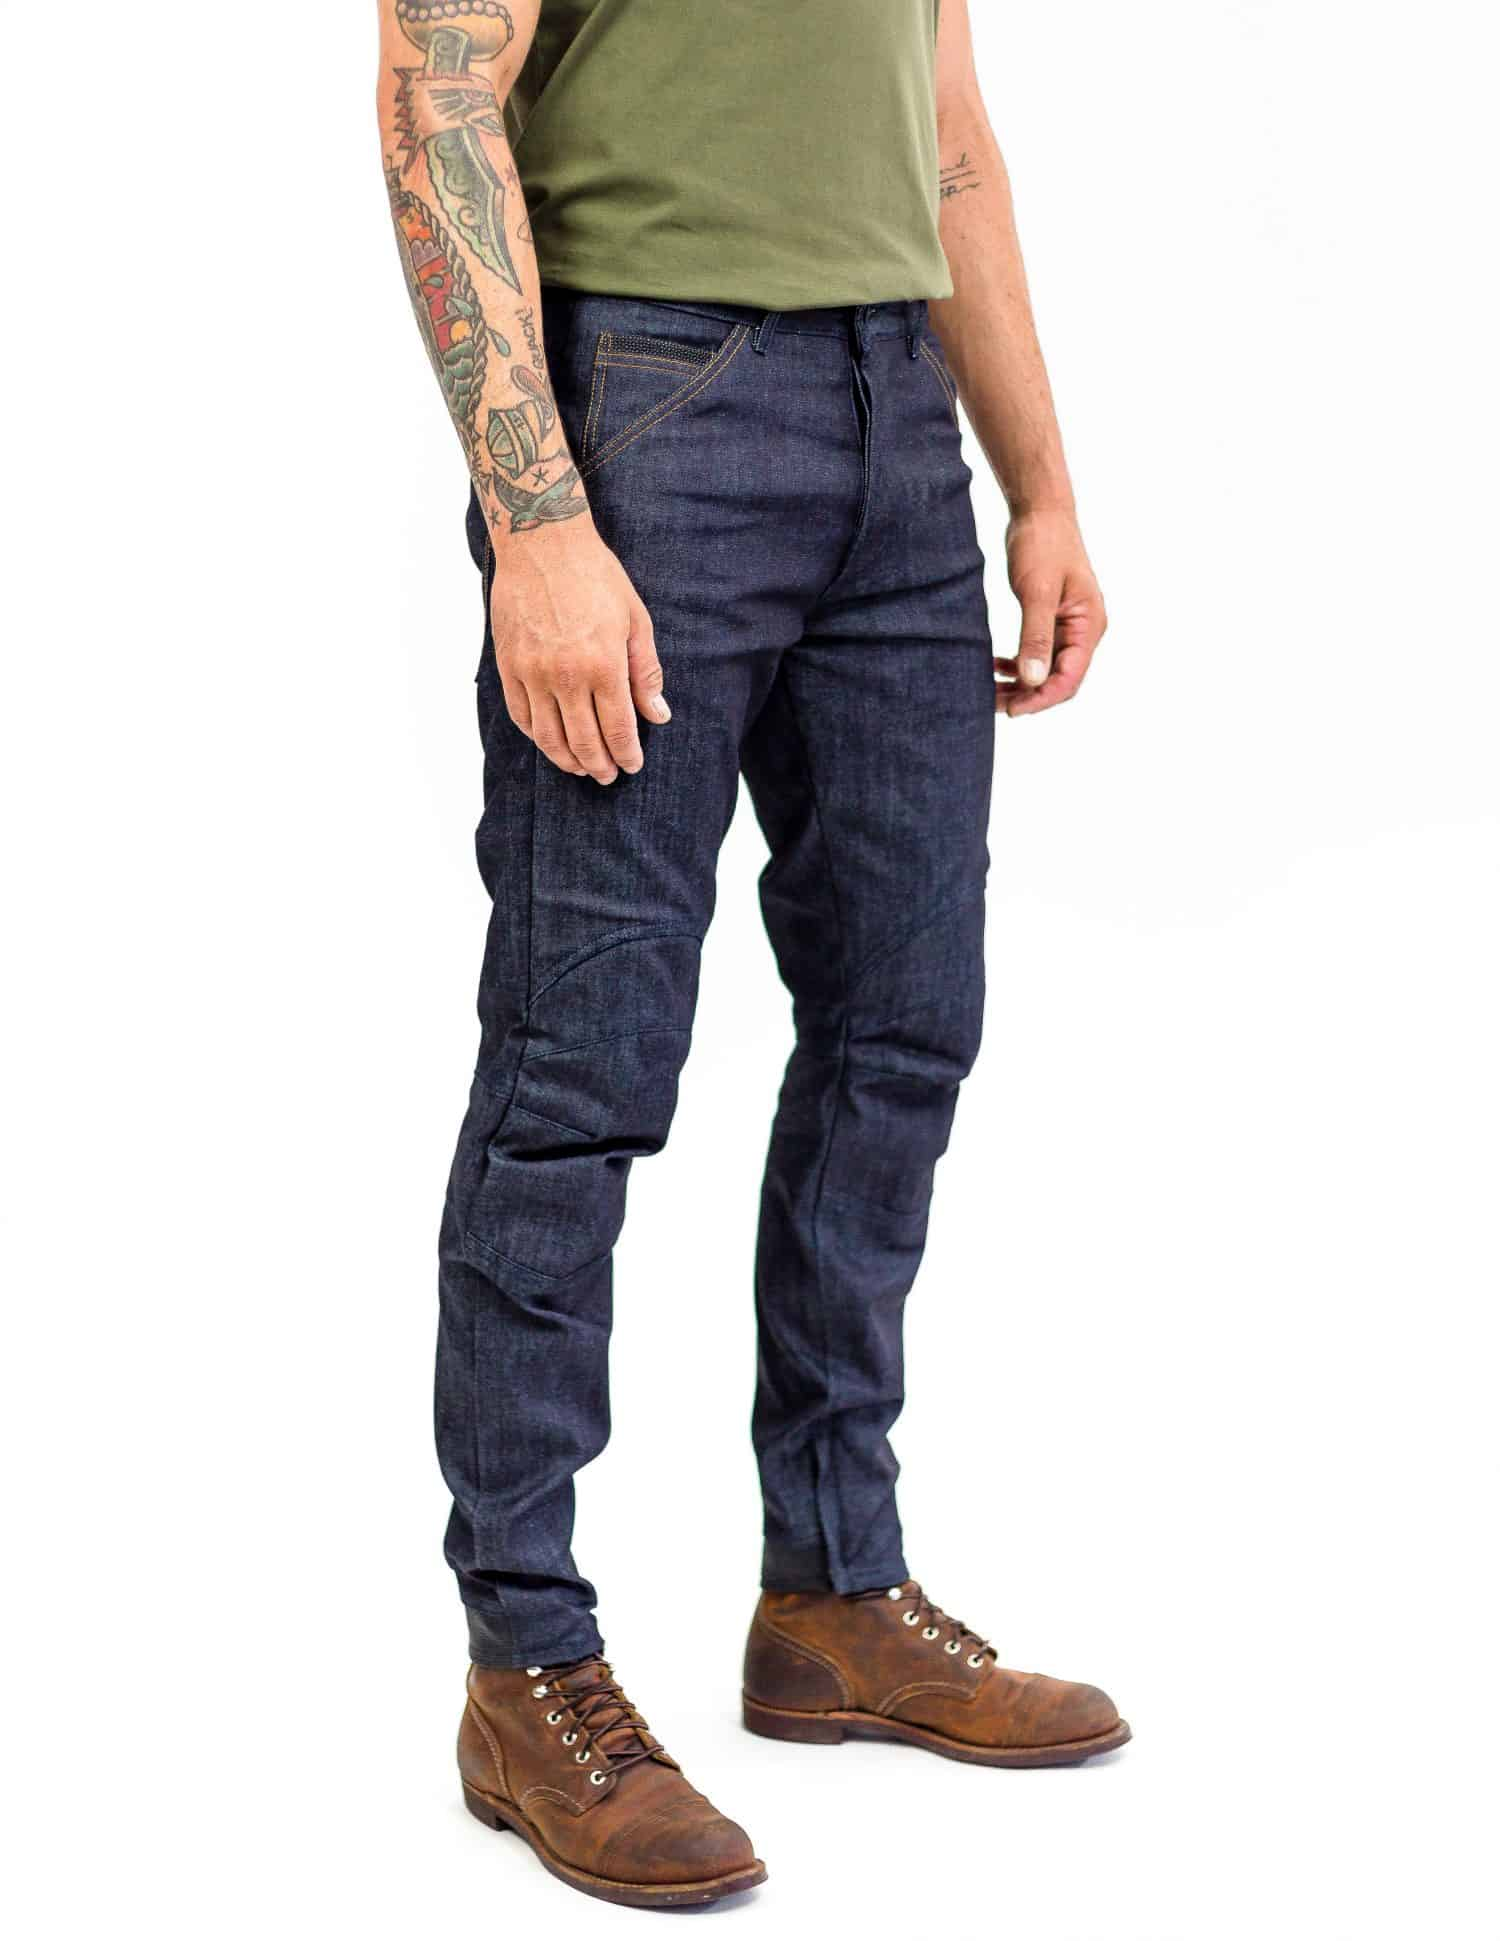 Tech 110 Moto Denim - Indigo